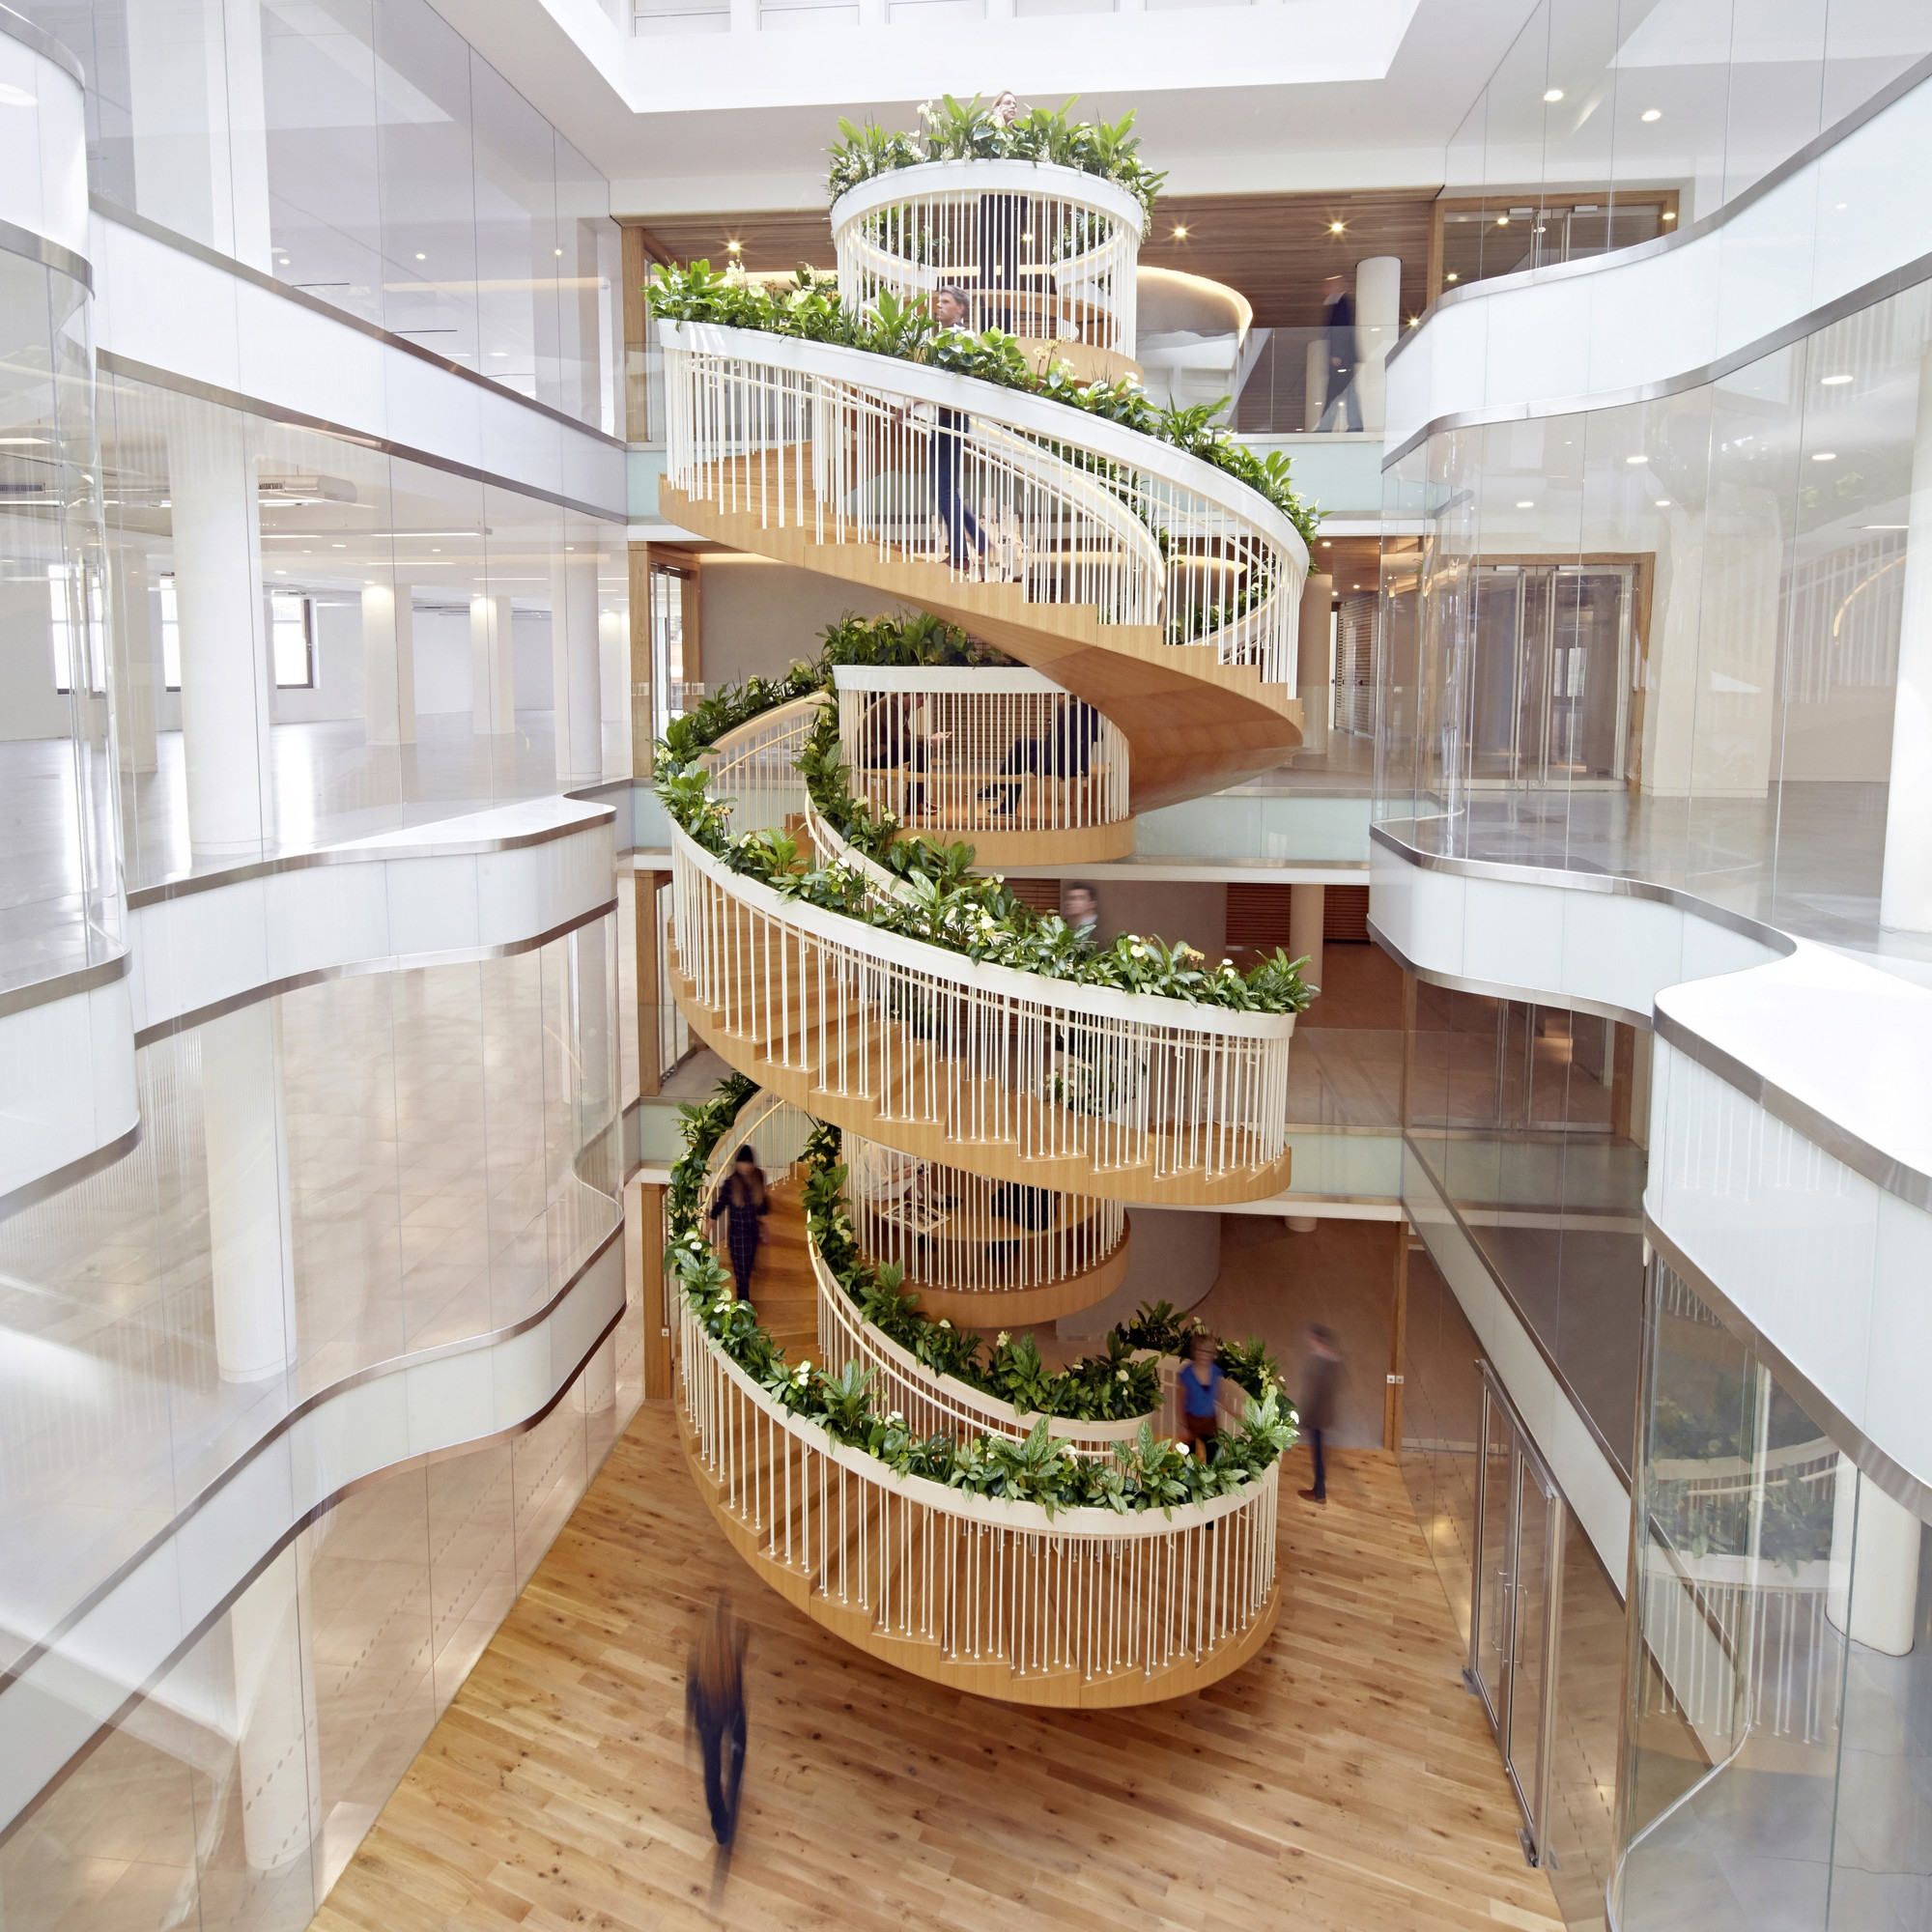 Living Staircase Paul Cocksedge Archdaily | Staircase Design For Commercial Buildings | Cylindrical Glass | Enclosed | Beautiful | Central Staircase | Sleek